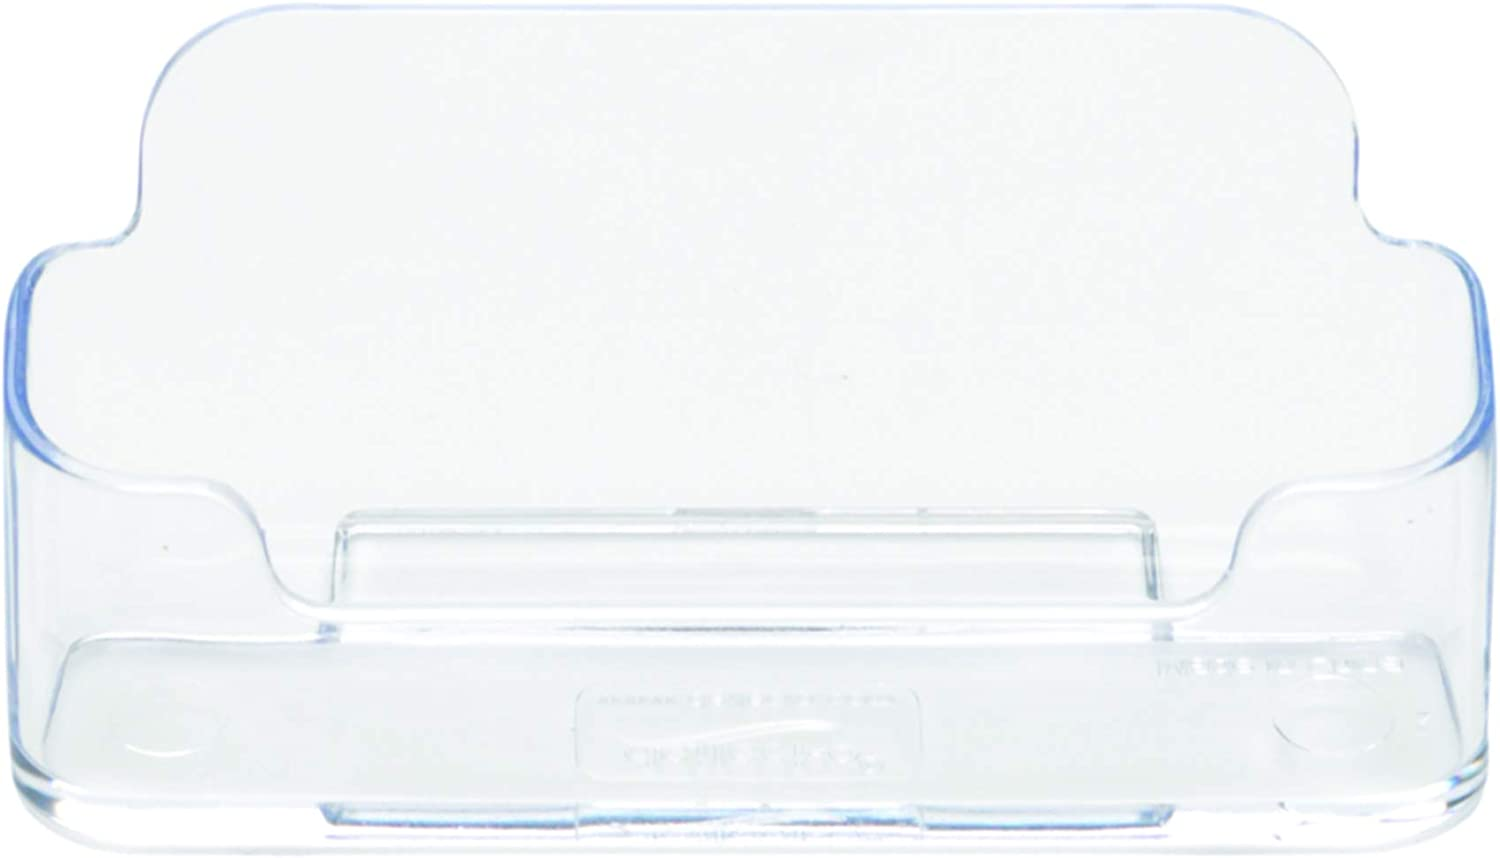 Clear Single Compartment 70101 3-3//4W x 1-7//8H x 1-3//8D 12 Pack Deflecto Business Card Holder